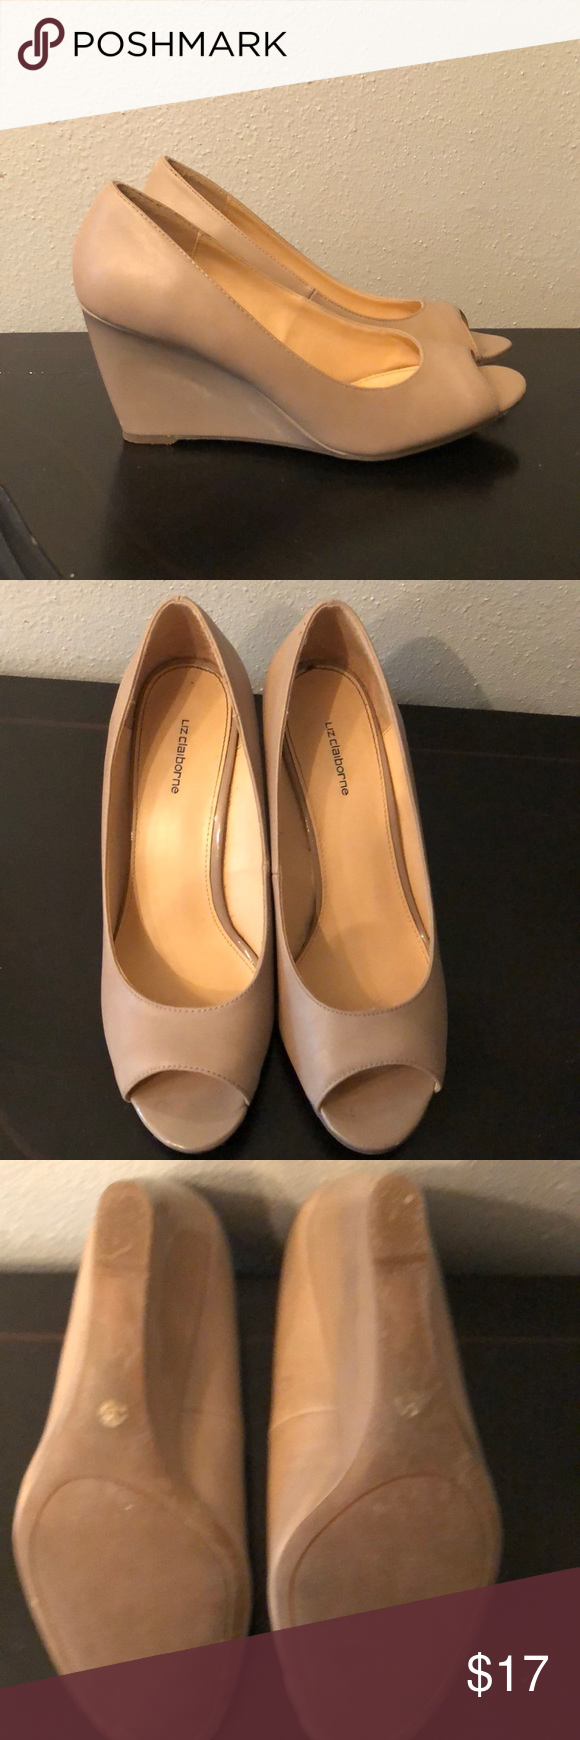 b85e4b6b15c0 Liz Claiborne Paula peep toe wedges Peep toes are so great because they  aren t